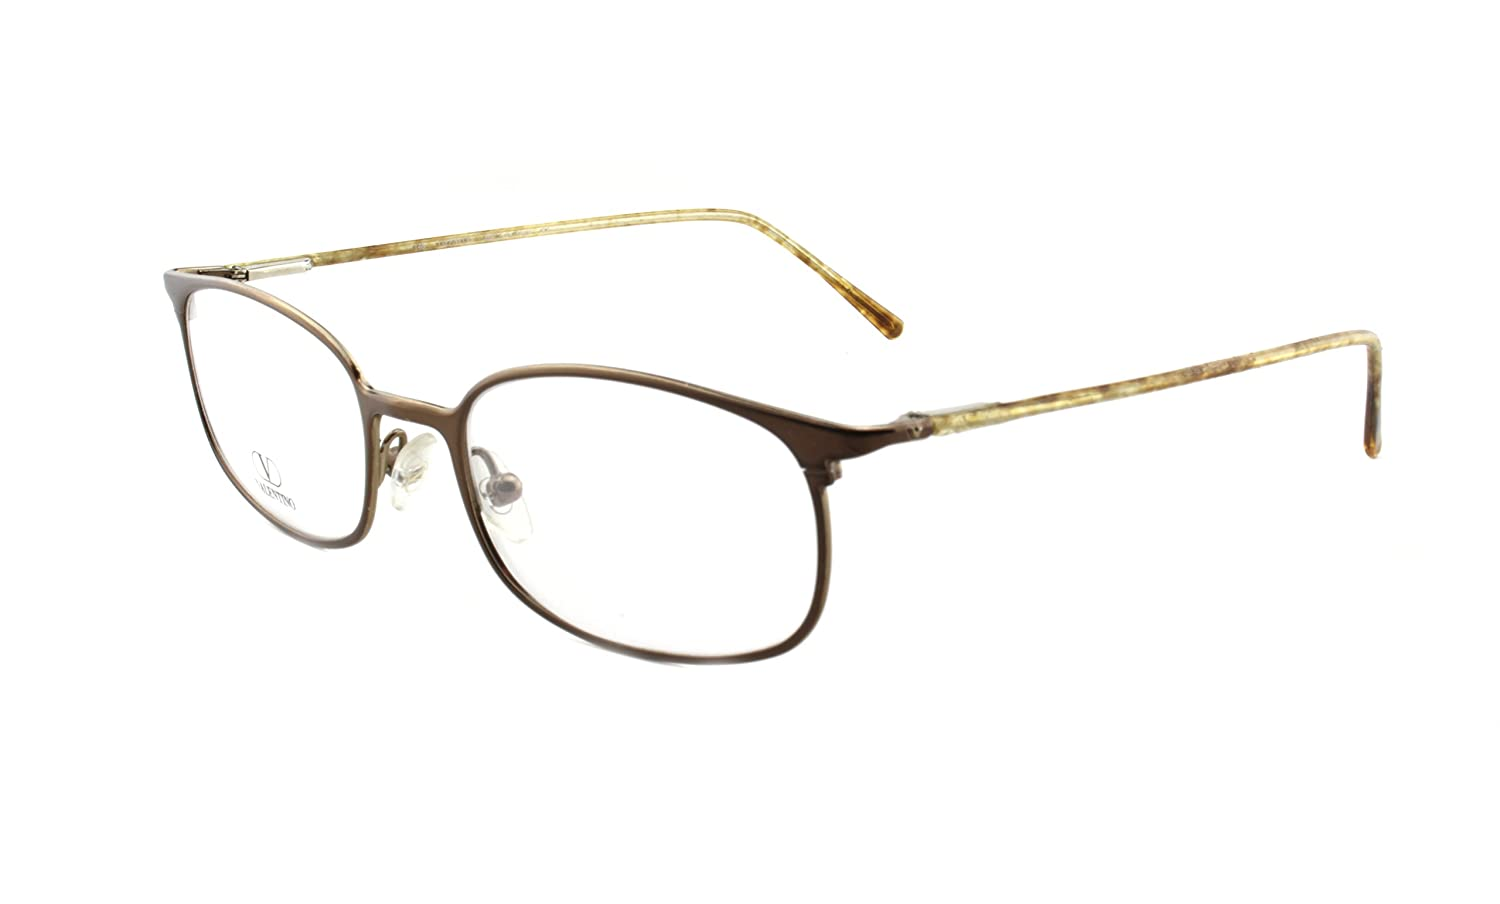 e35798b1ed Amazon.com  New Authentic Valentino 1097 Brown (0N4N) Unisex Eyeglasses  Made in Italy  Health   Personal Care